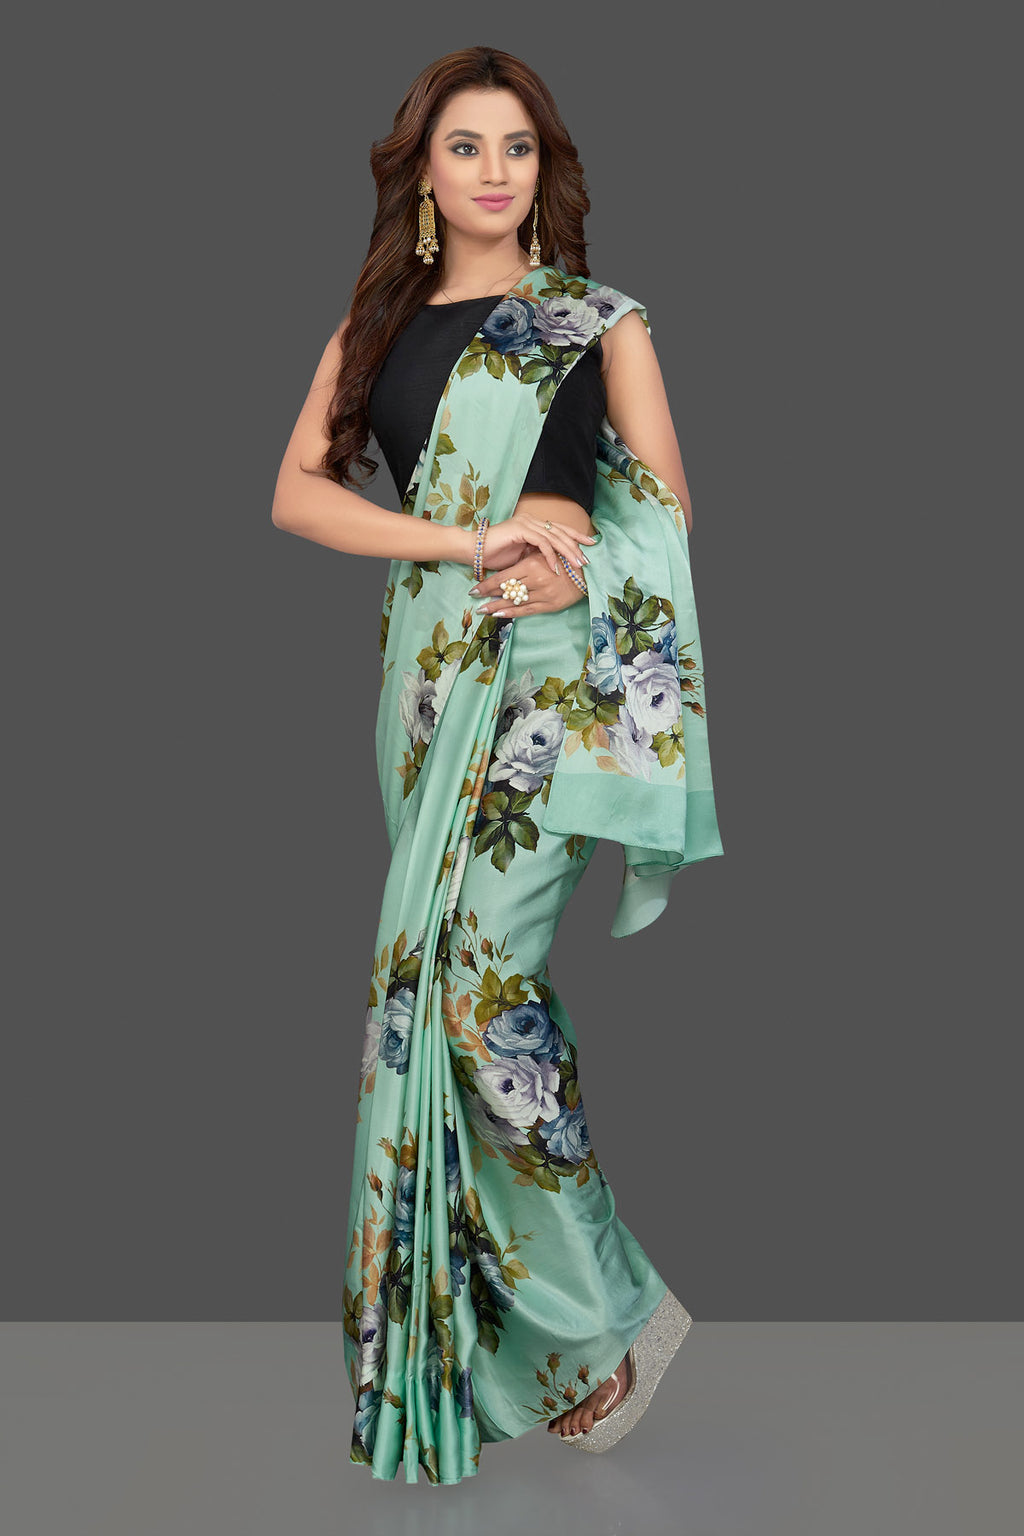 Buy stunning mint green crepe sari online in USA with rose floral print. Make you presence felt with your Indian style on special occasions in beautiful designer sarees, crepe silk sarees, georgette saris, printed sarees from Pure Elegance Indian fashion store in USA.-full view